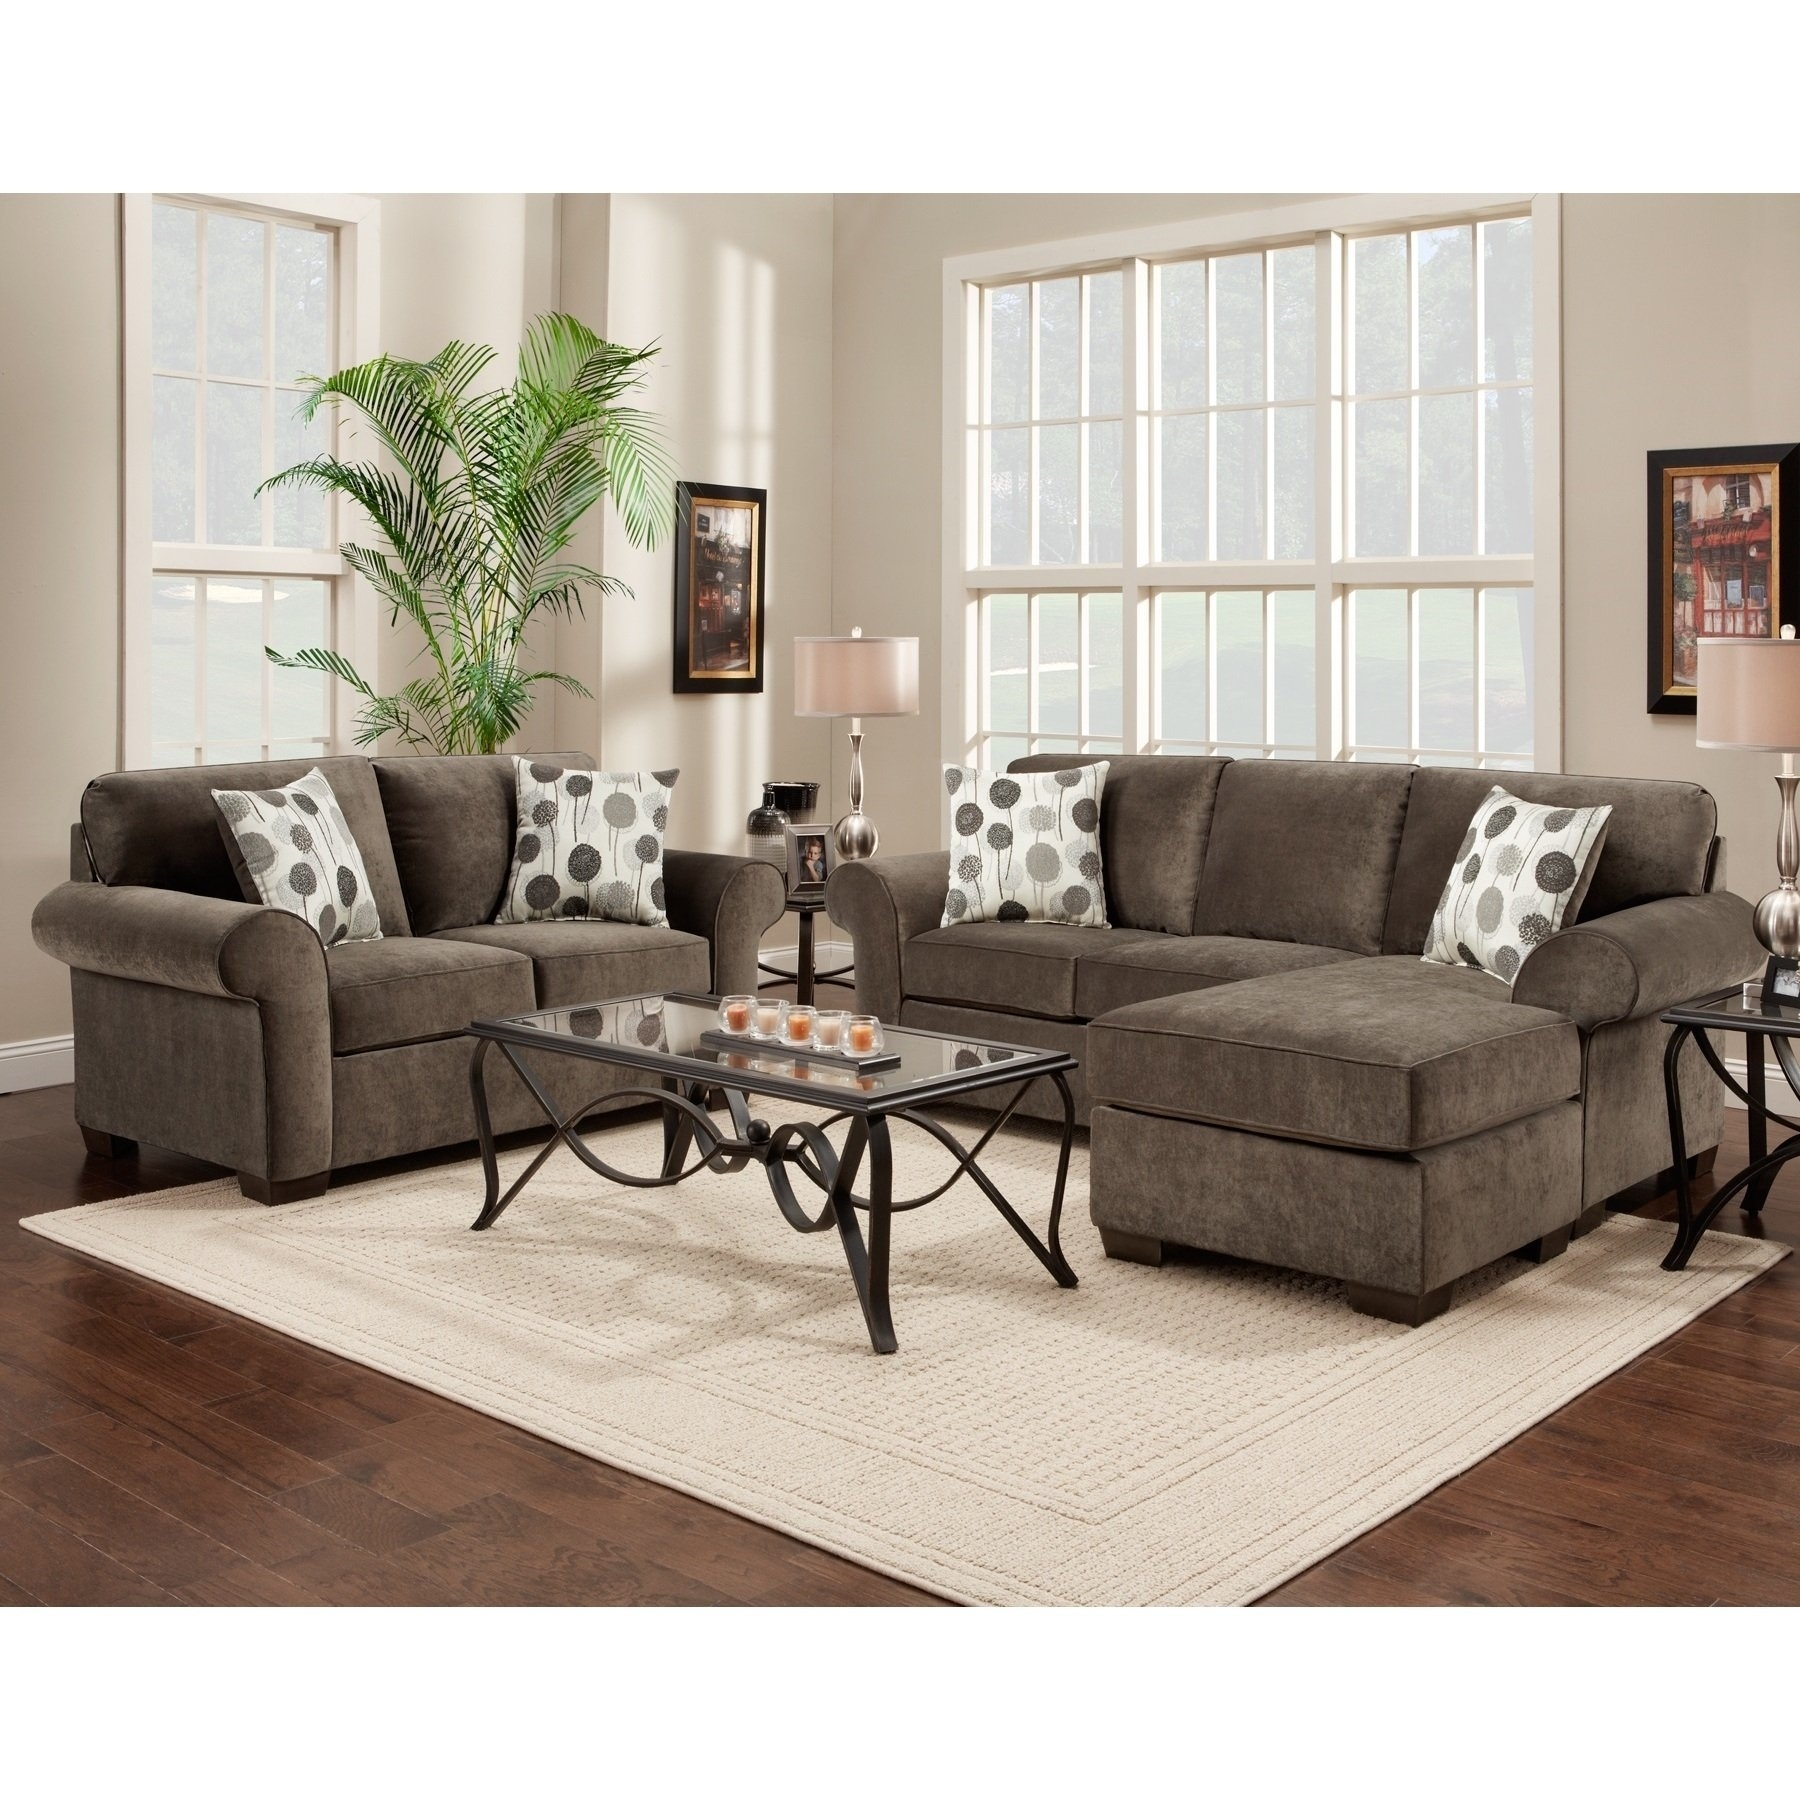 Loveseat Sectional | Whitecraftwoodard Mona Wicker Right Arm Intended For Taron 3 Piece Power Reclining Sectionals With Right Facing Console Loveseat (View 11 of 20)